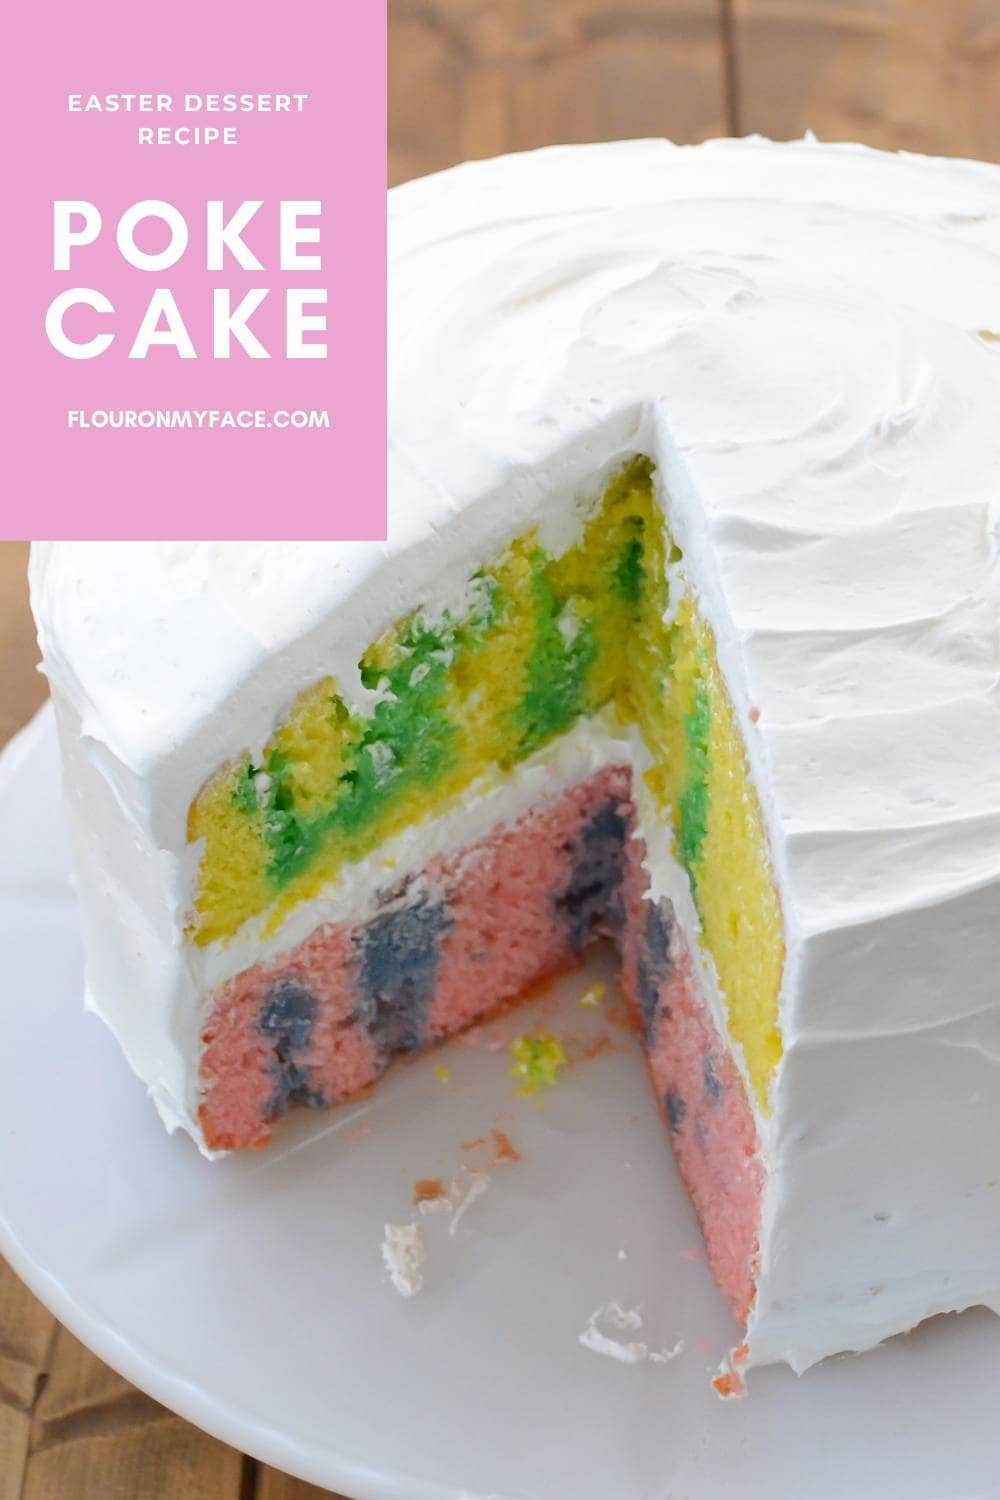 A colorful Easter cake served on a cake plate with one wedge cut out.